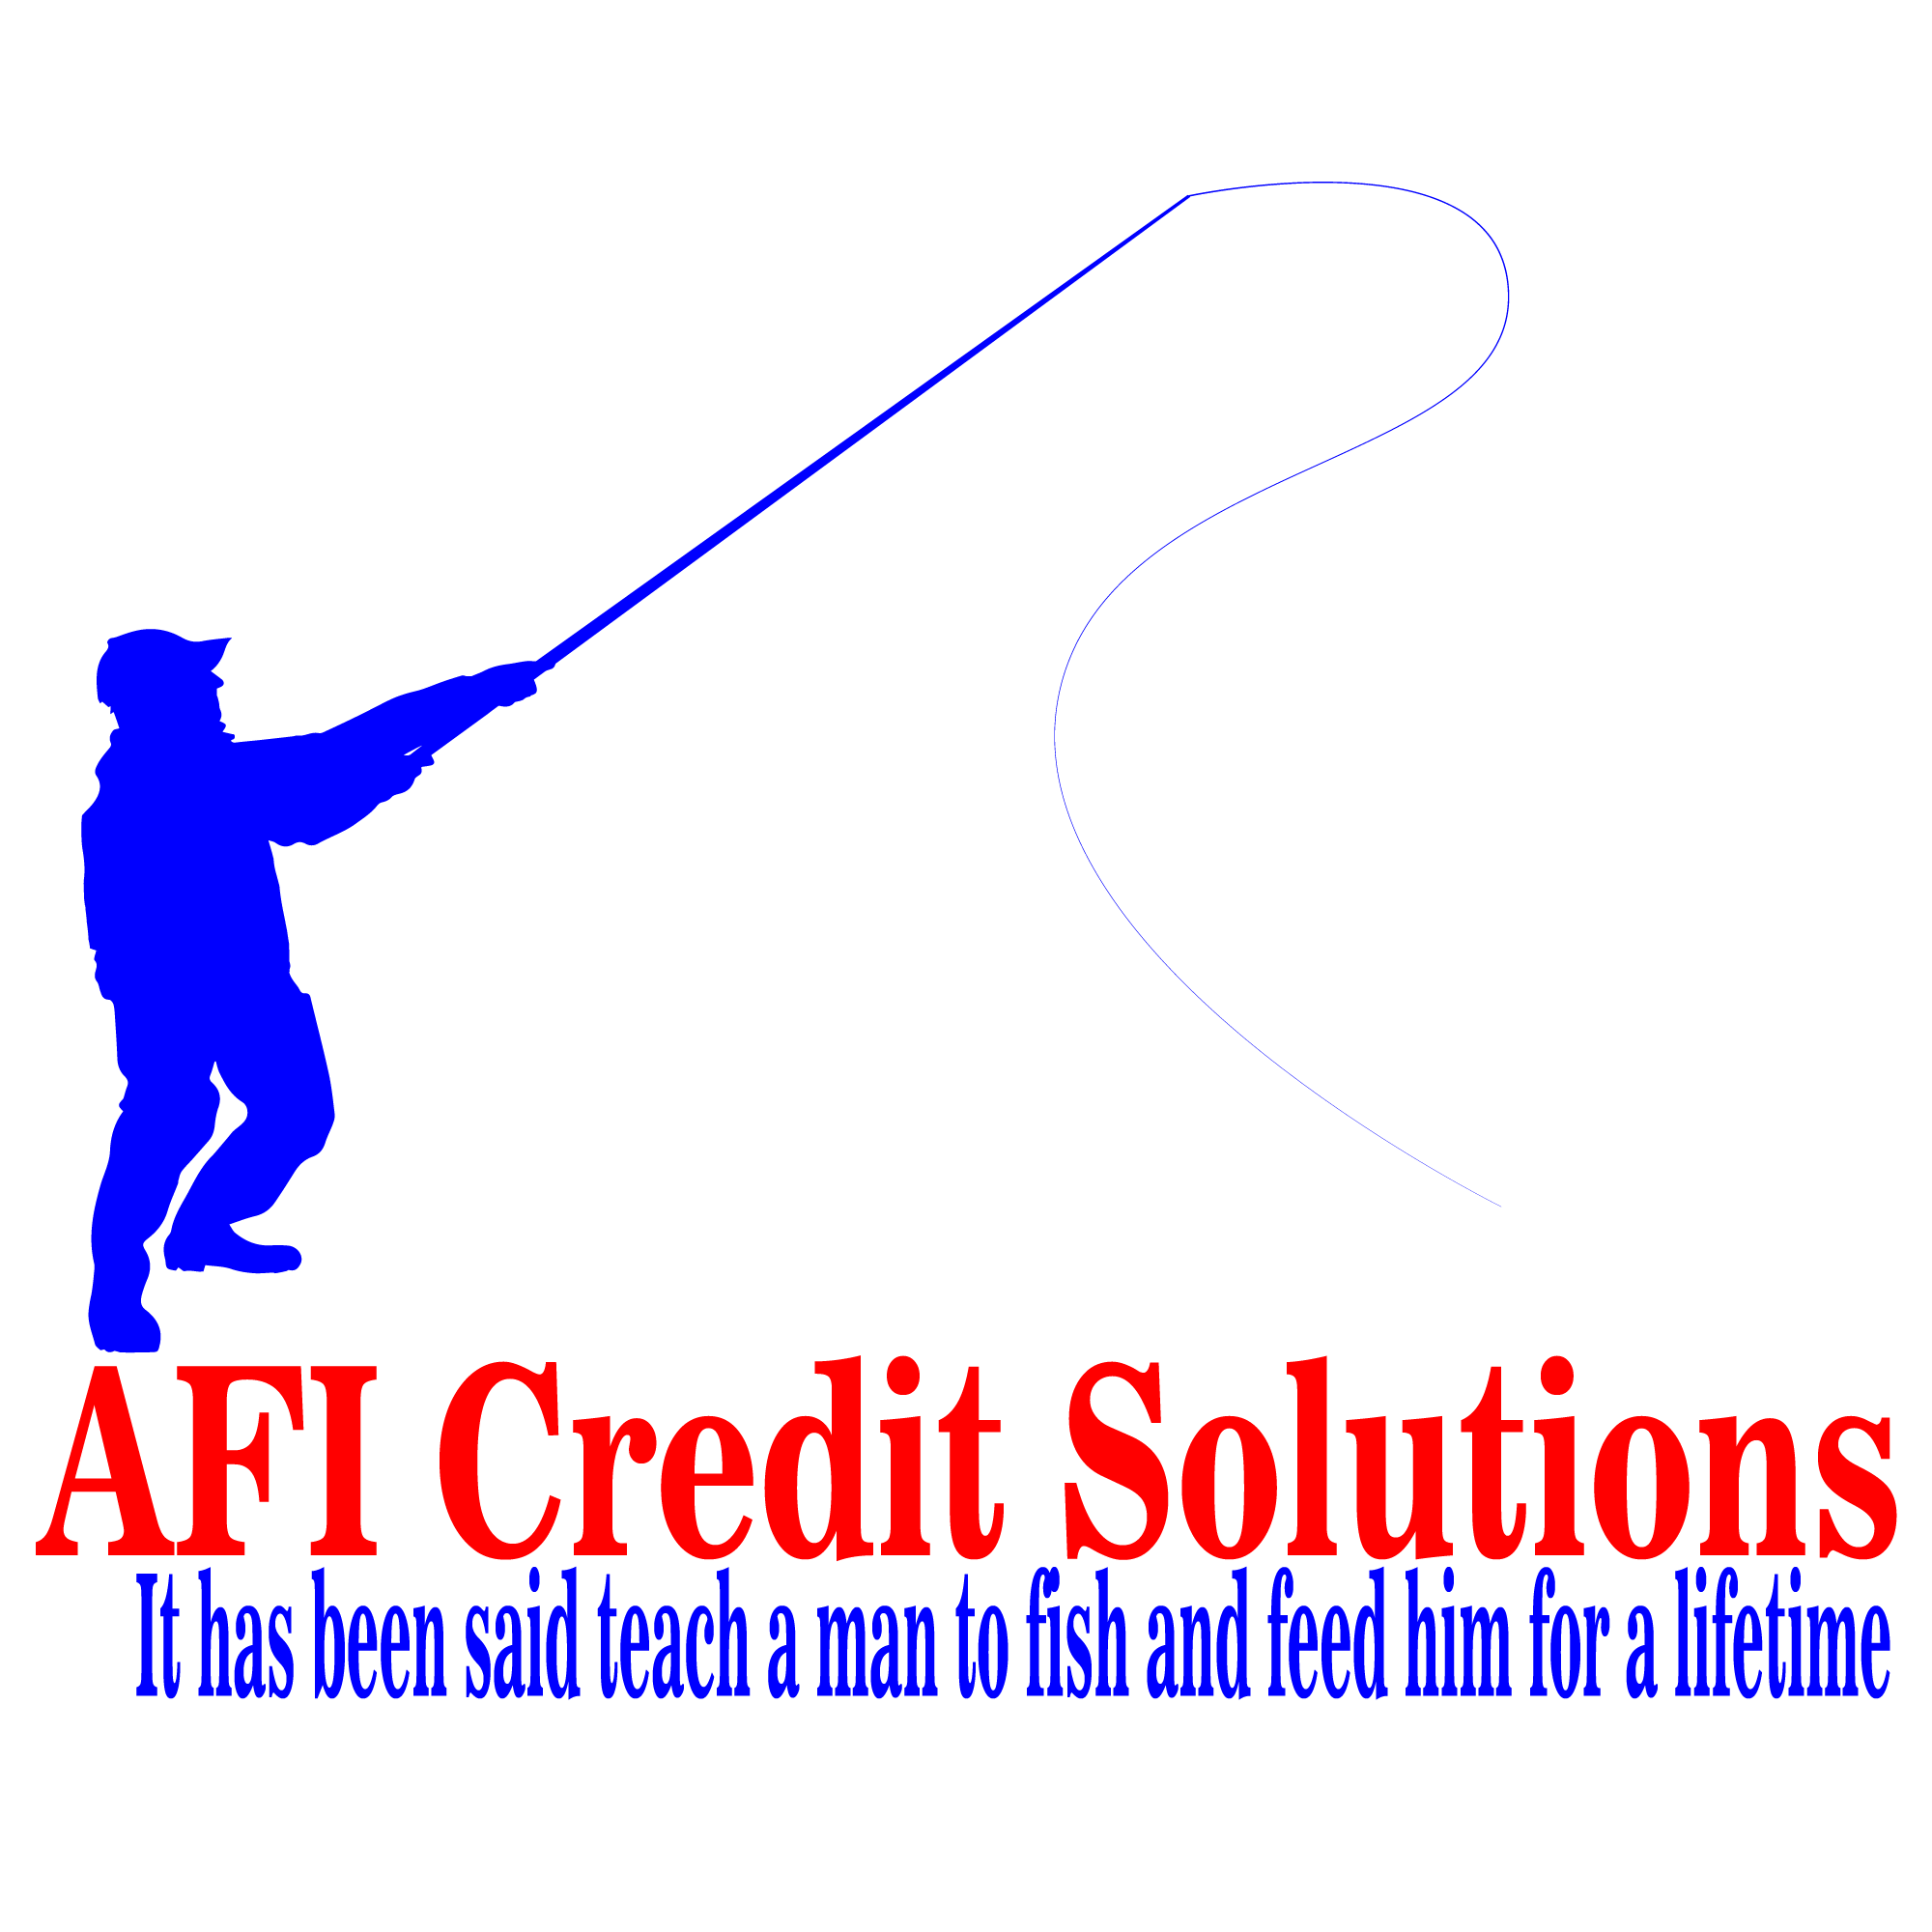 AFI Credit Solutions